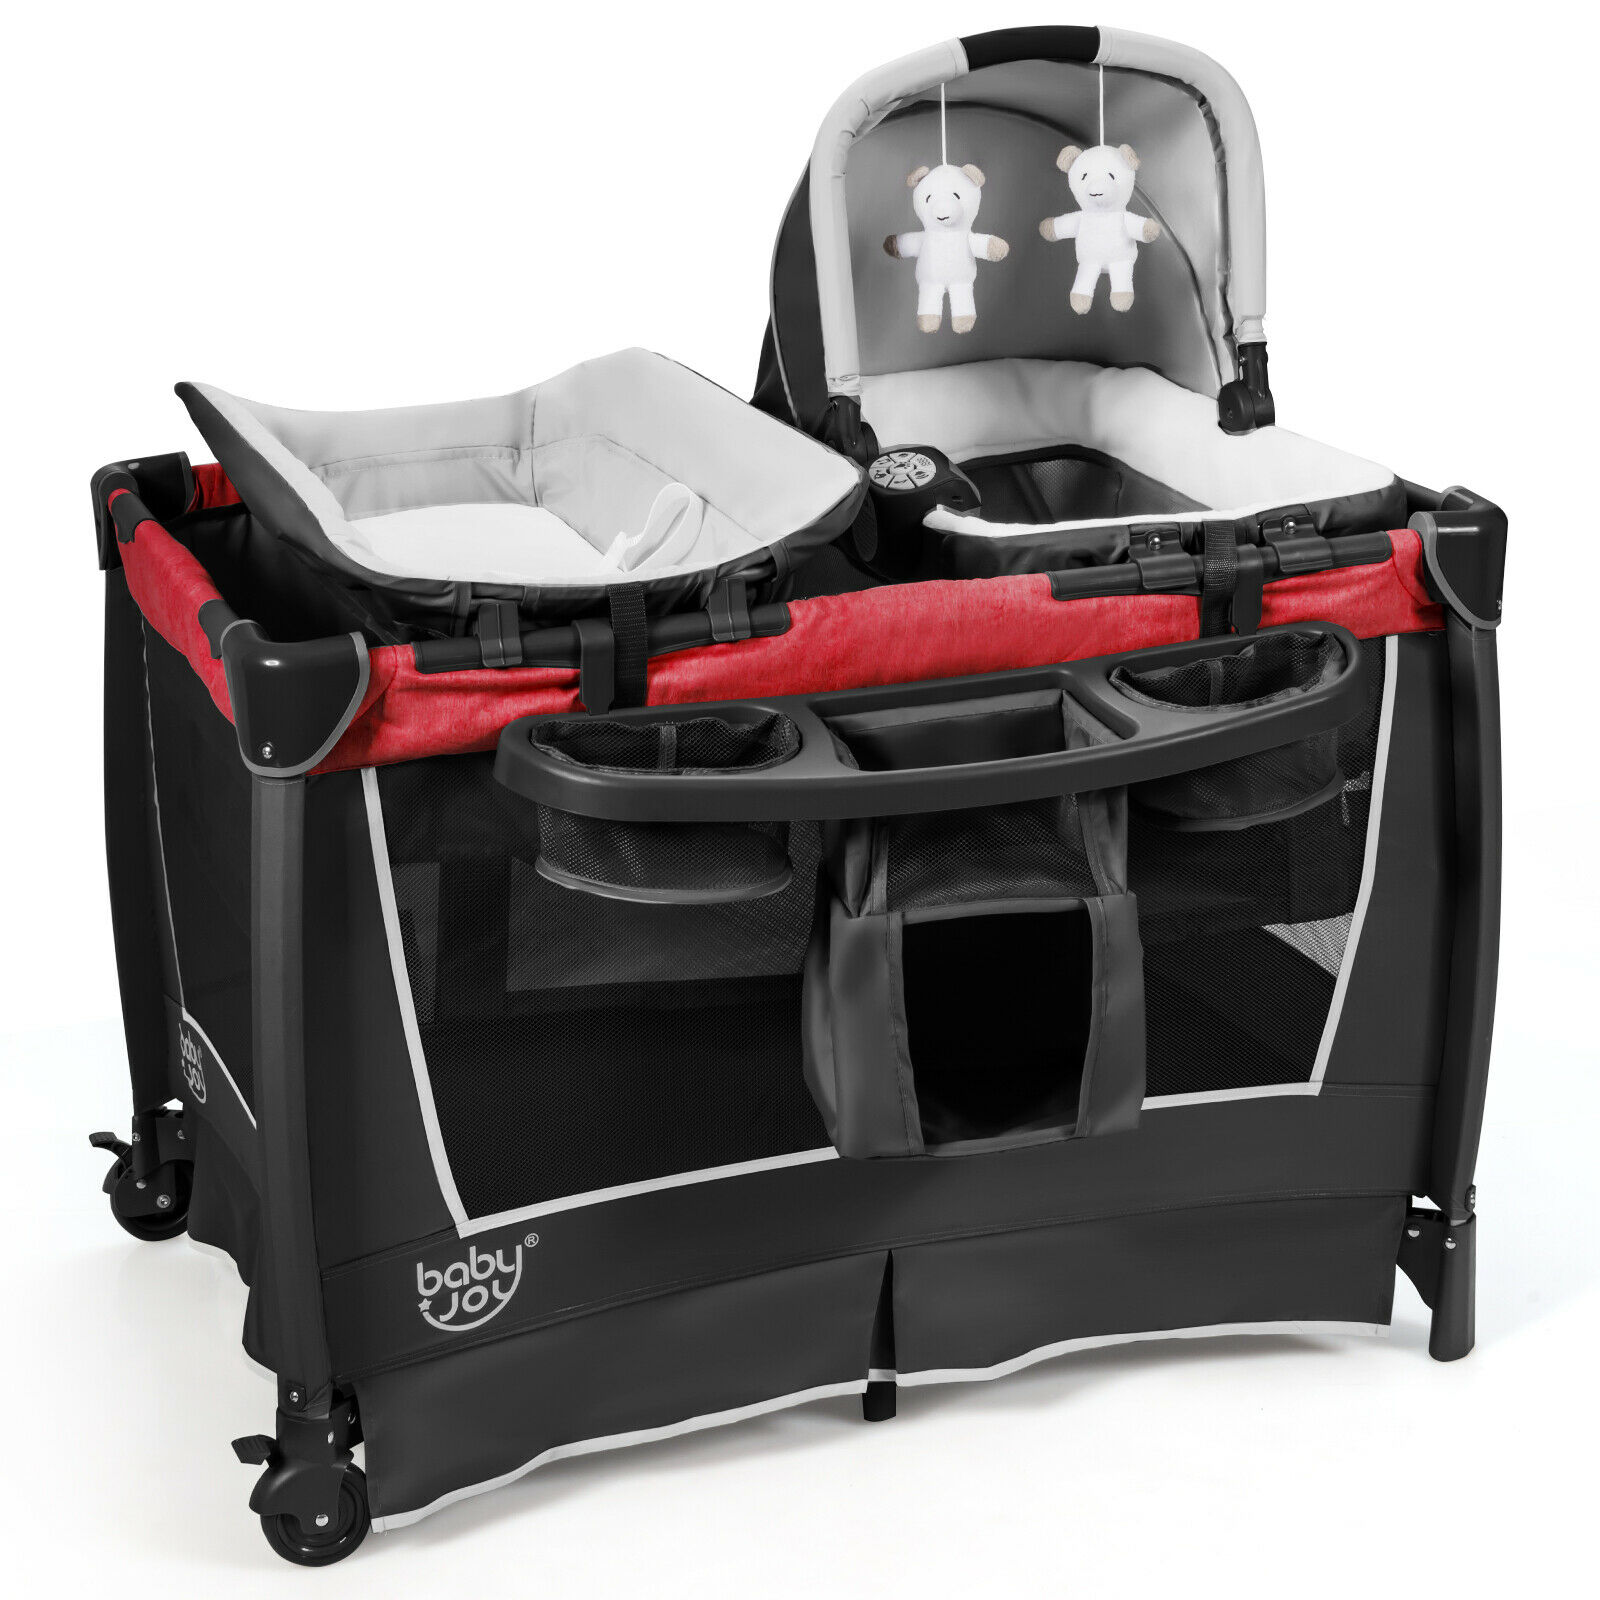 4-in-1 Convertible Portable Baby Playard Newborn Napper w/ Toys & Music